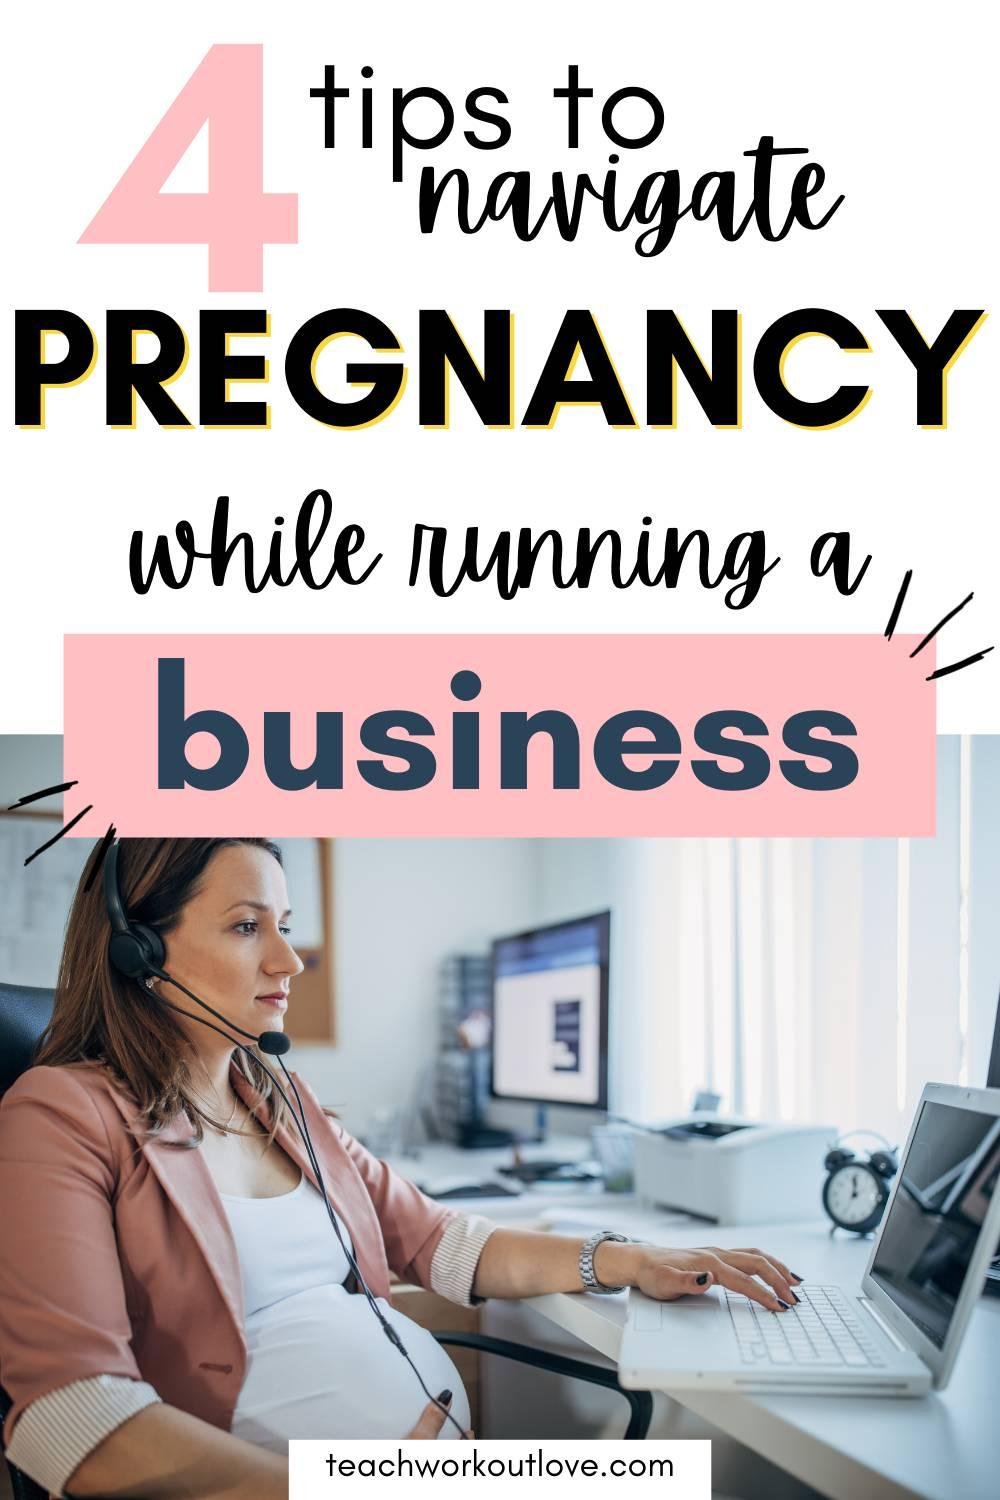 Running a business is tough the best of times, but what about running a business when you're pregnant? Here's how to do it: